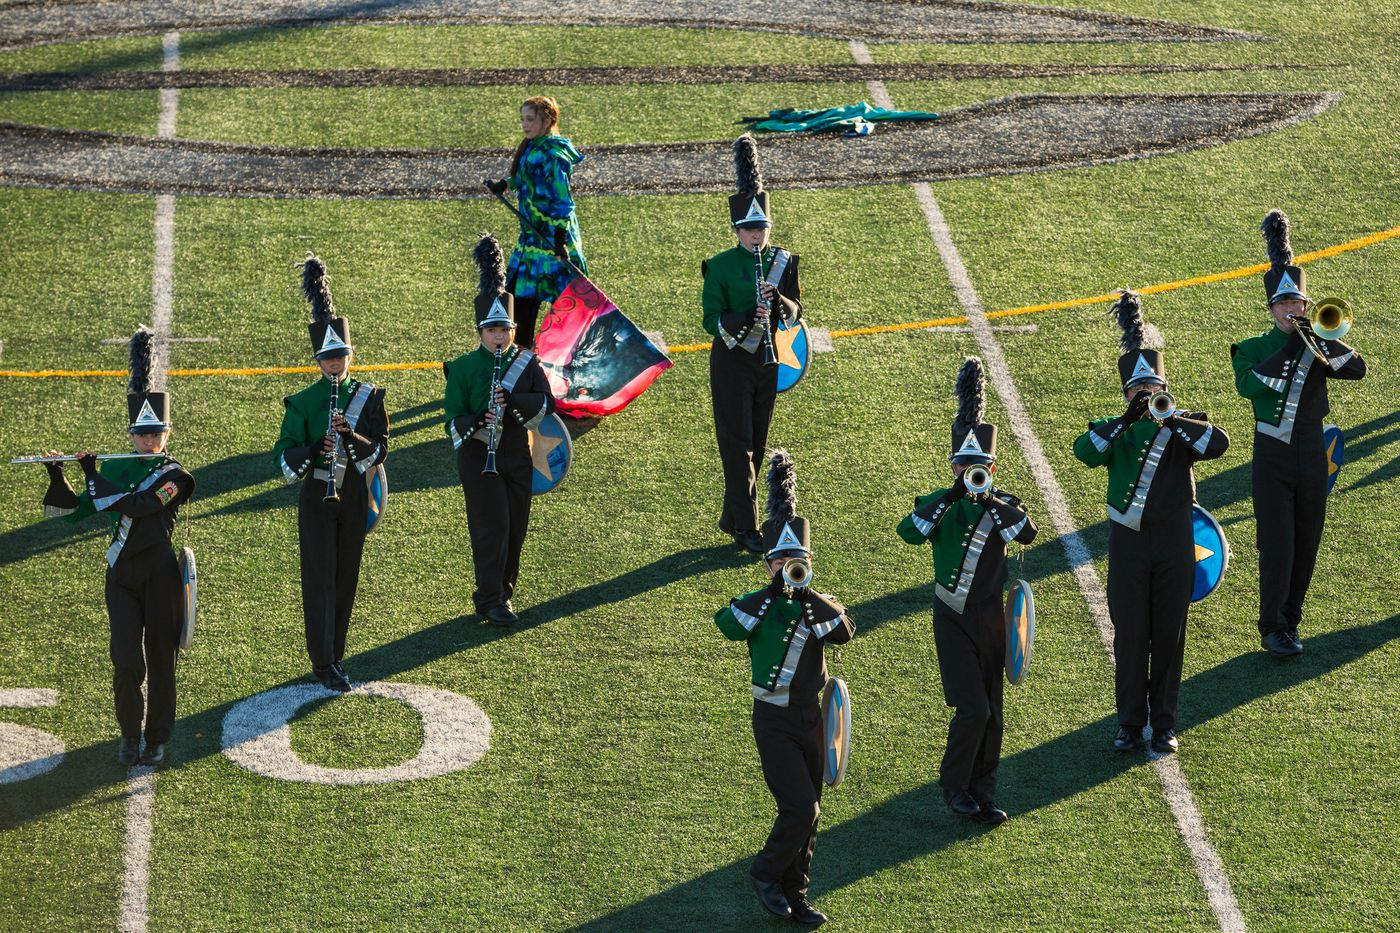 The Colony High School marching band performs on Thursday, September 24, 2015. Their group is the only high school marching band in Alaska.